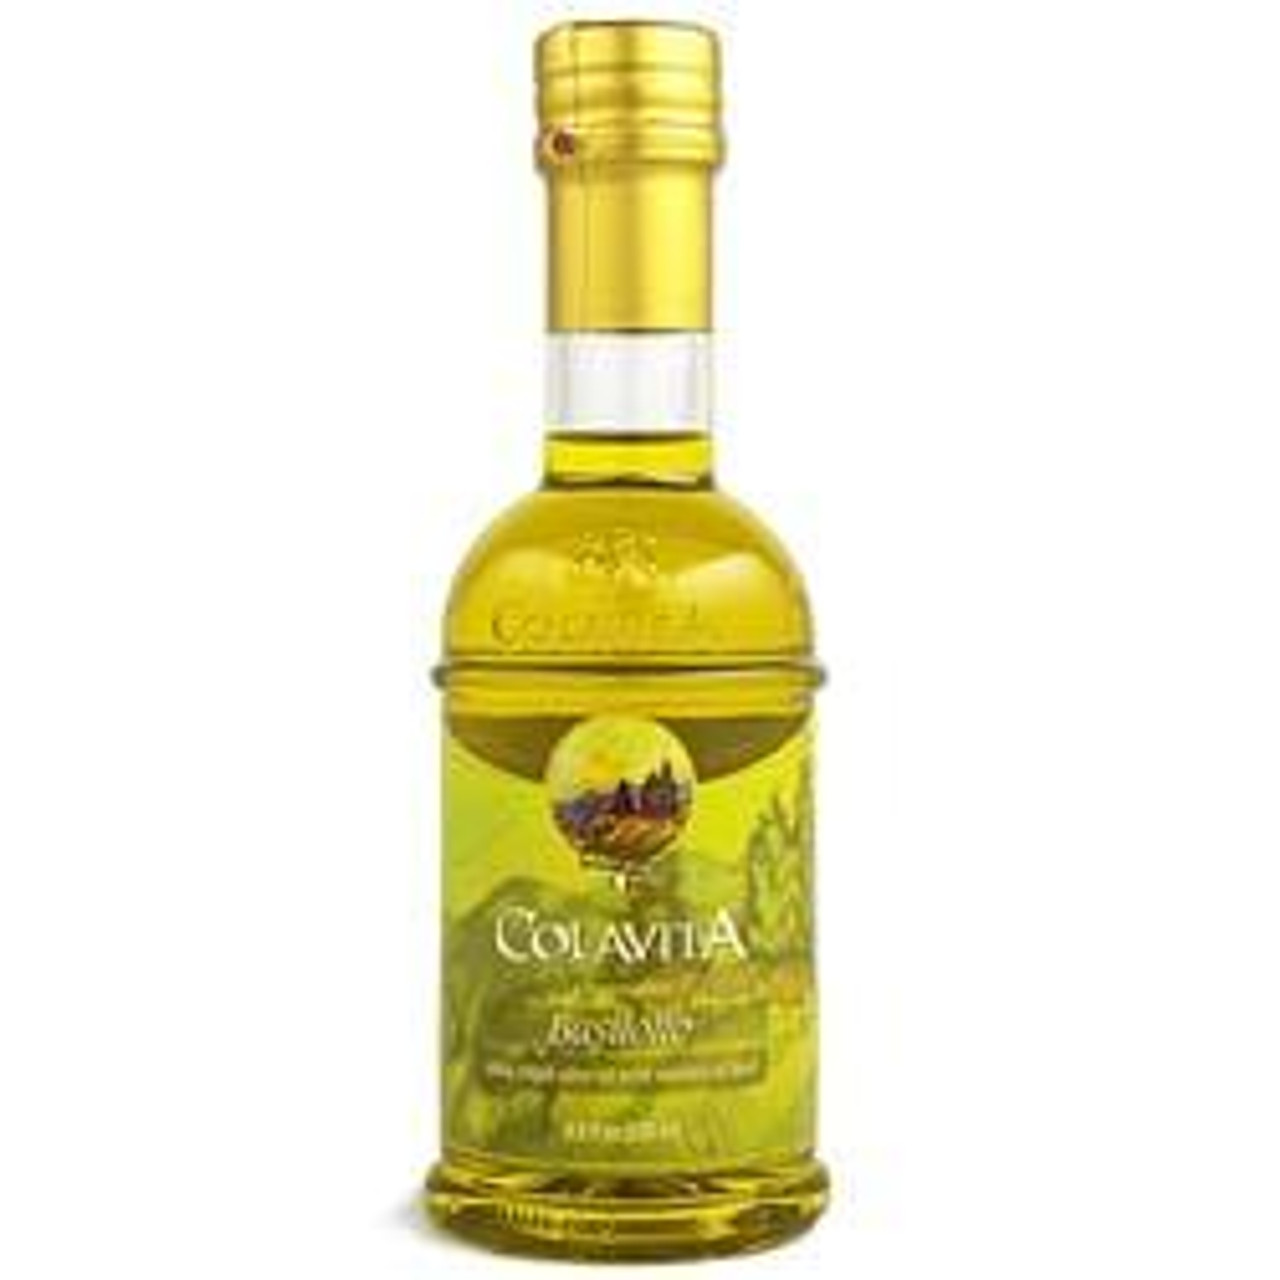 Colavita Extra Virgin Olive Oil infused with basil essence